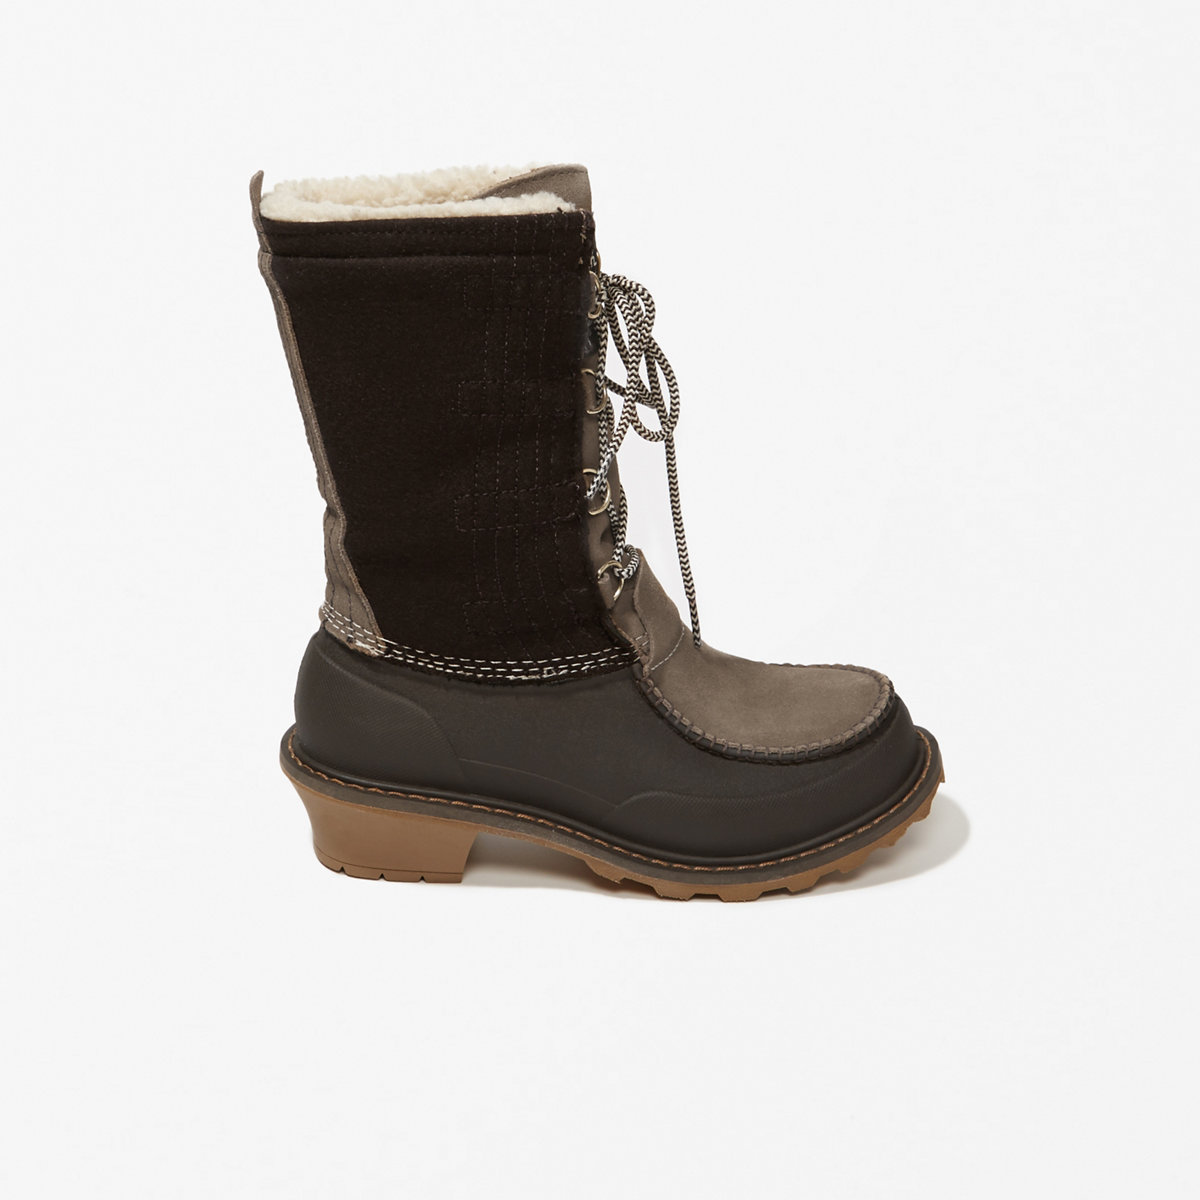 Woolrich Wooly Lace-Up Boots